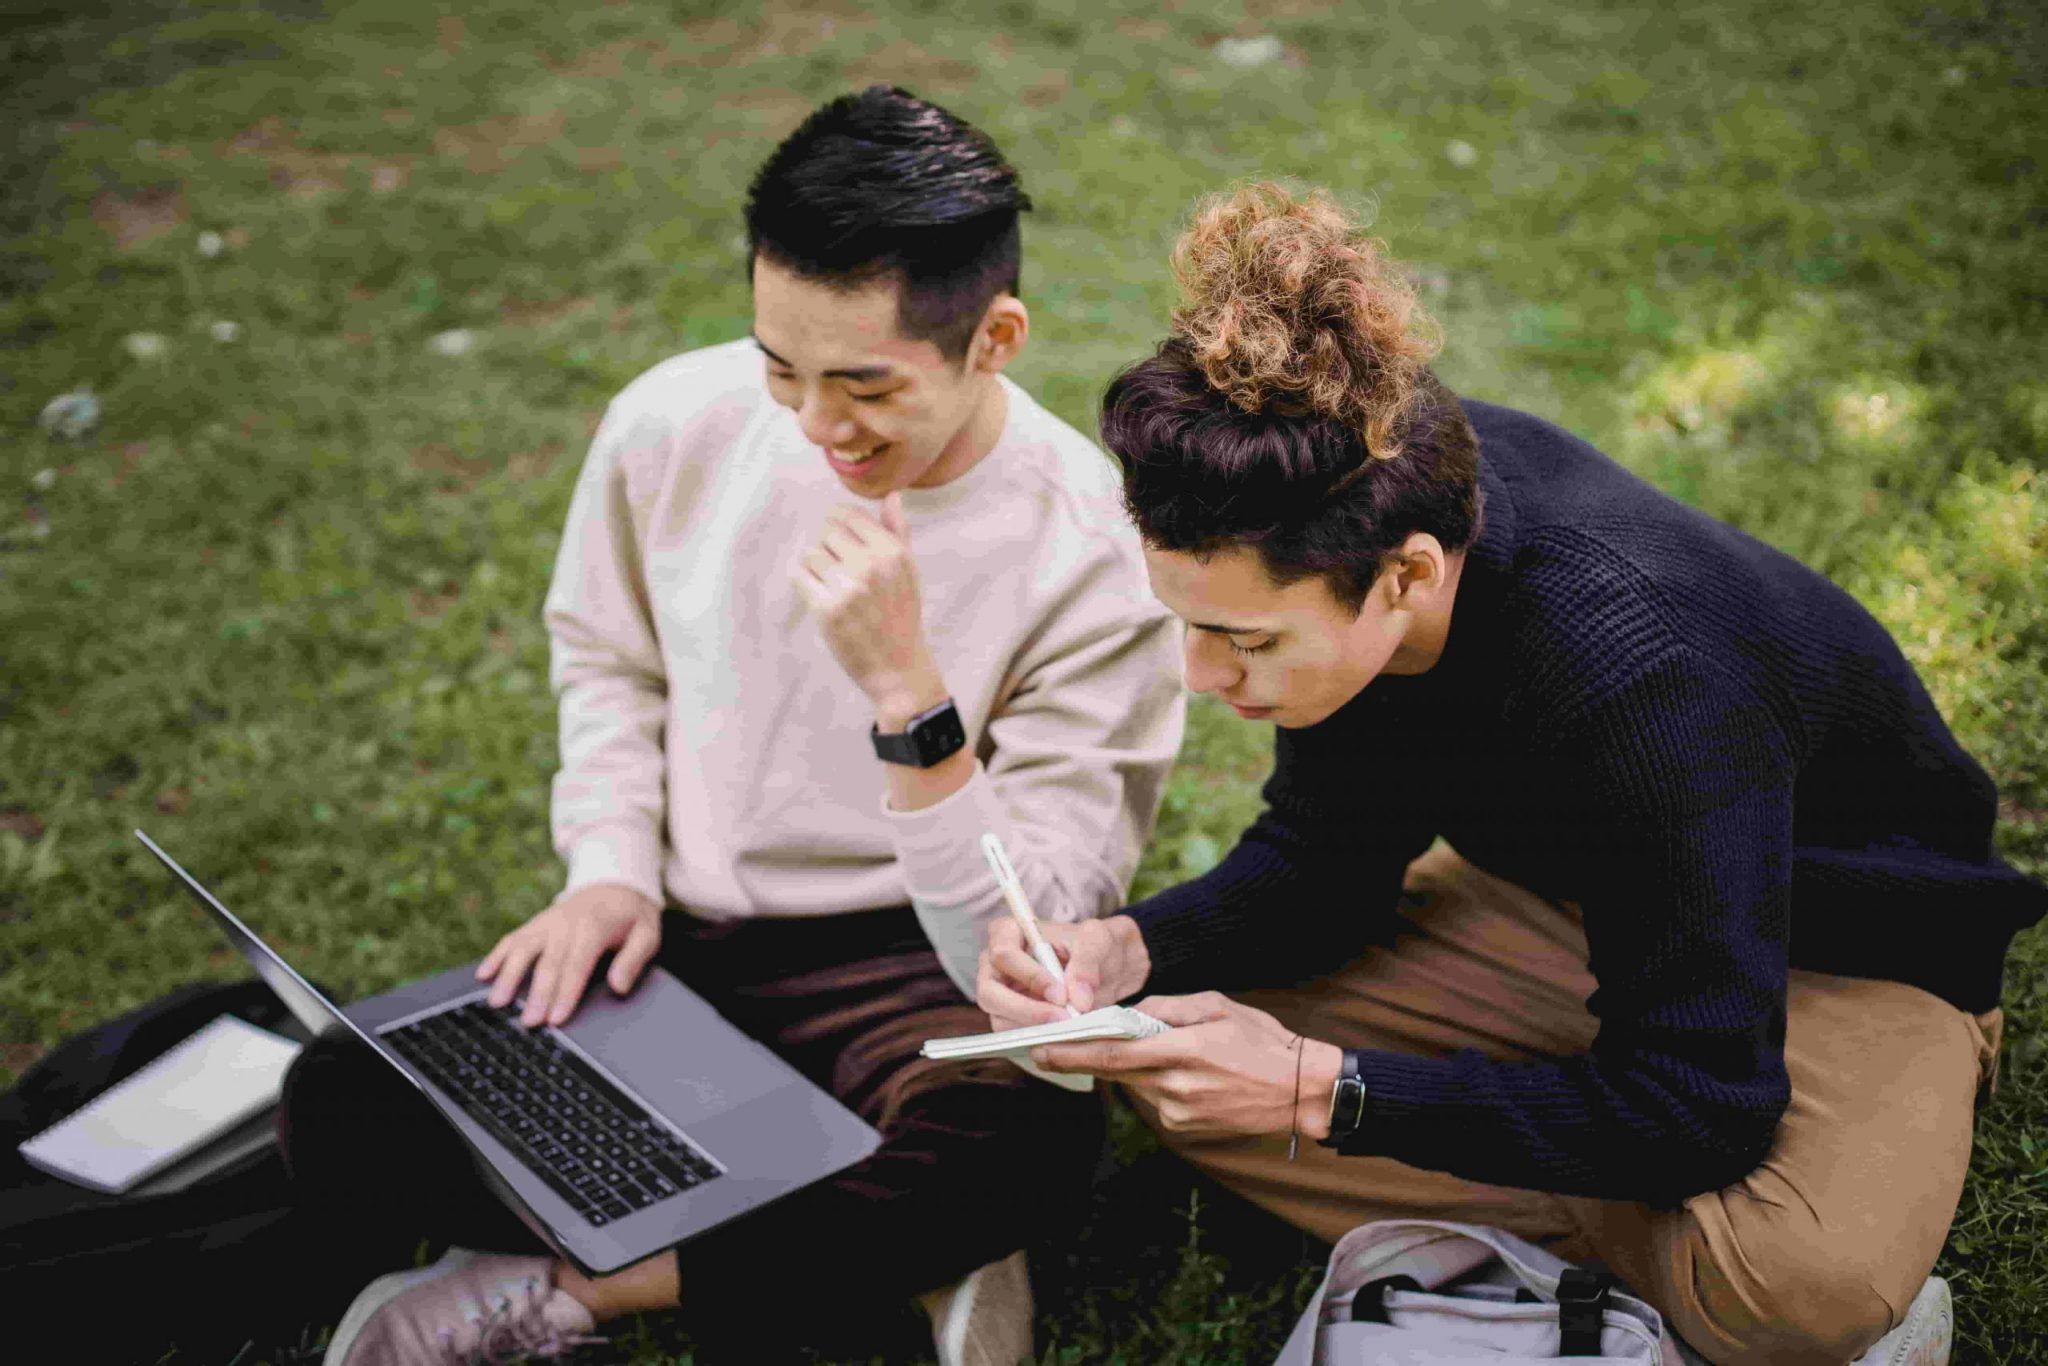 Webinar Transcription for SEO; two men sitting in a park and discussing work on their laptop while taking notes